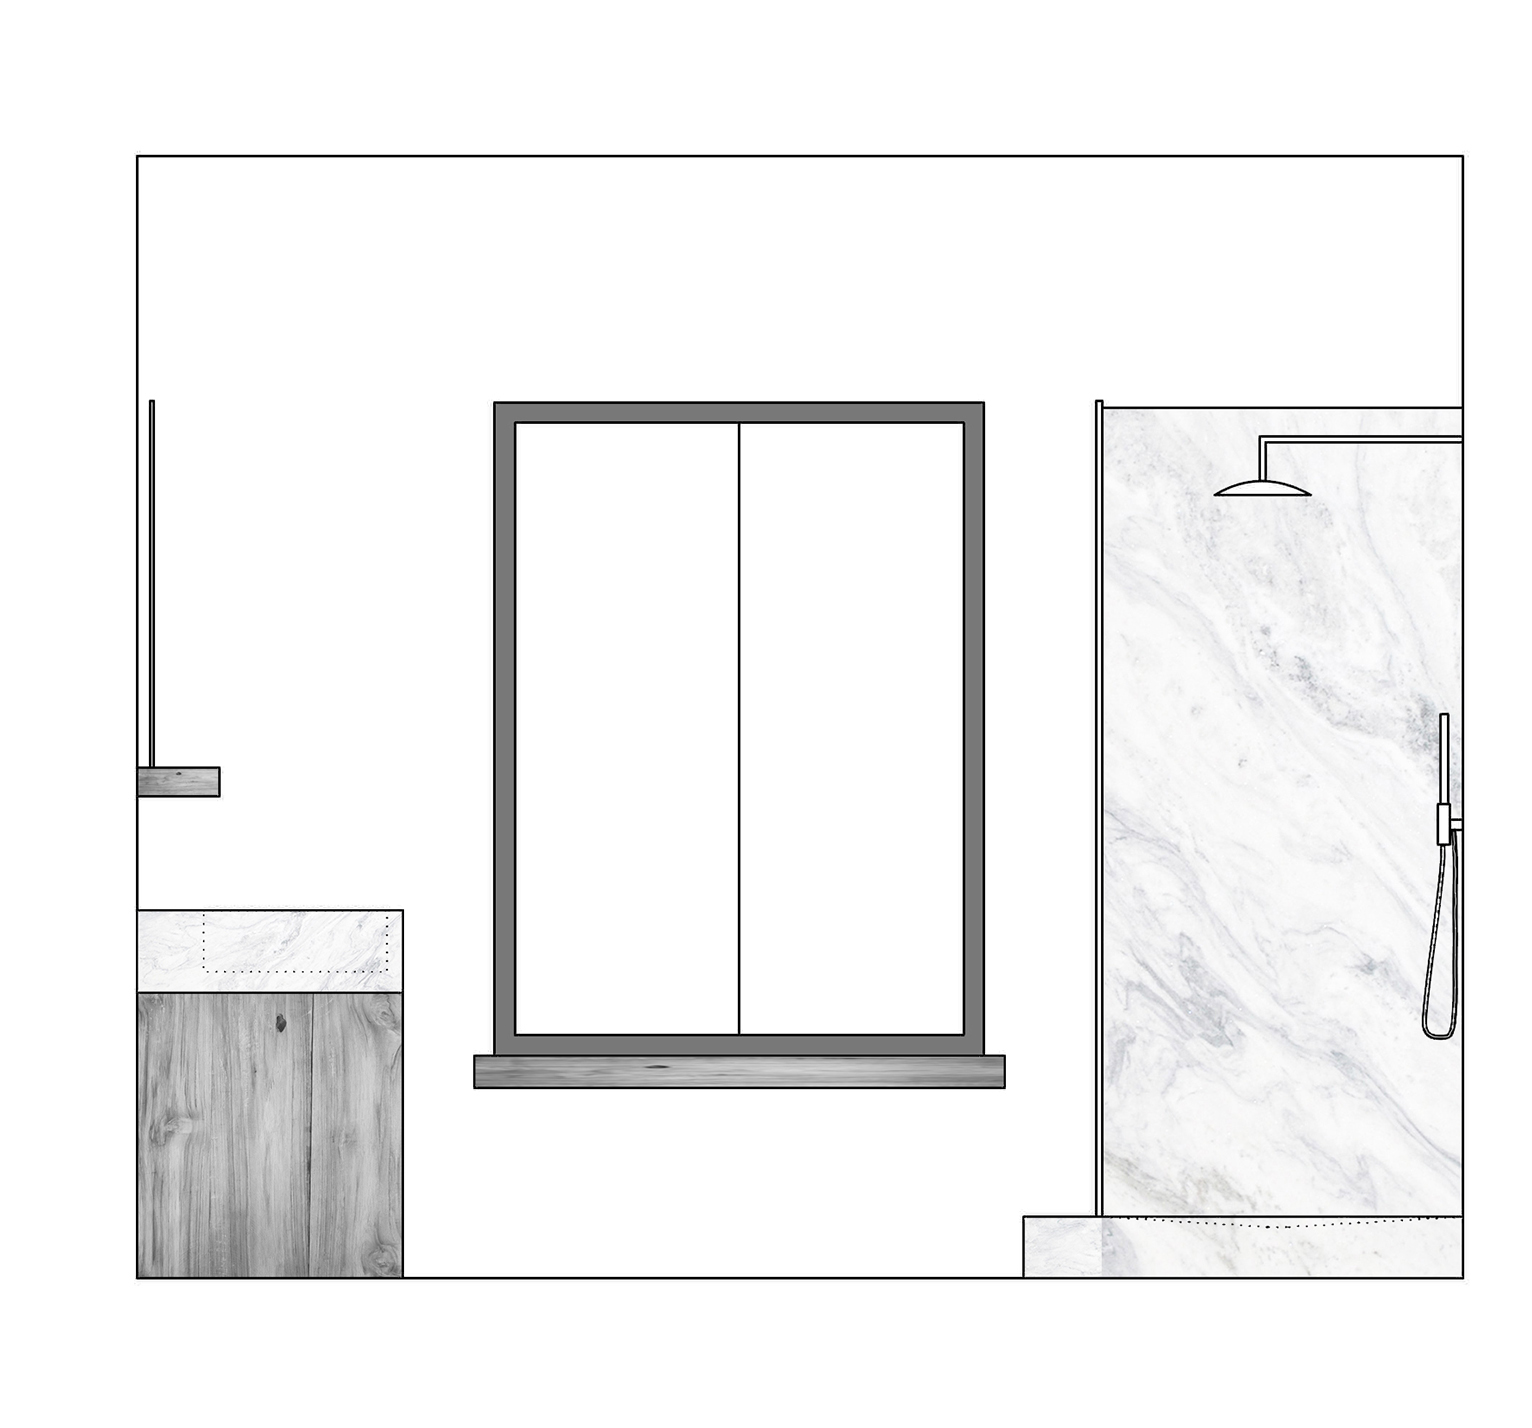 Bathroom-ClarisseDubus-ElevationB-IMG.jpg